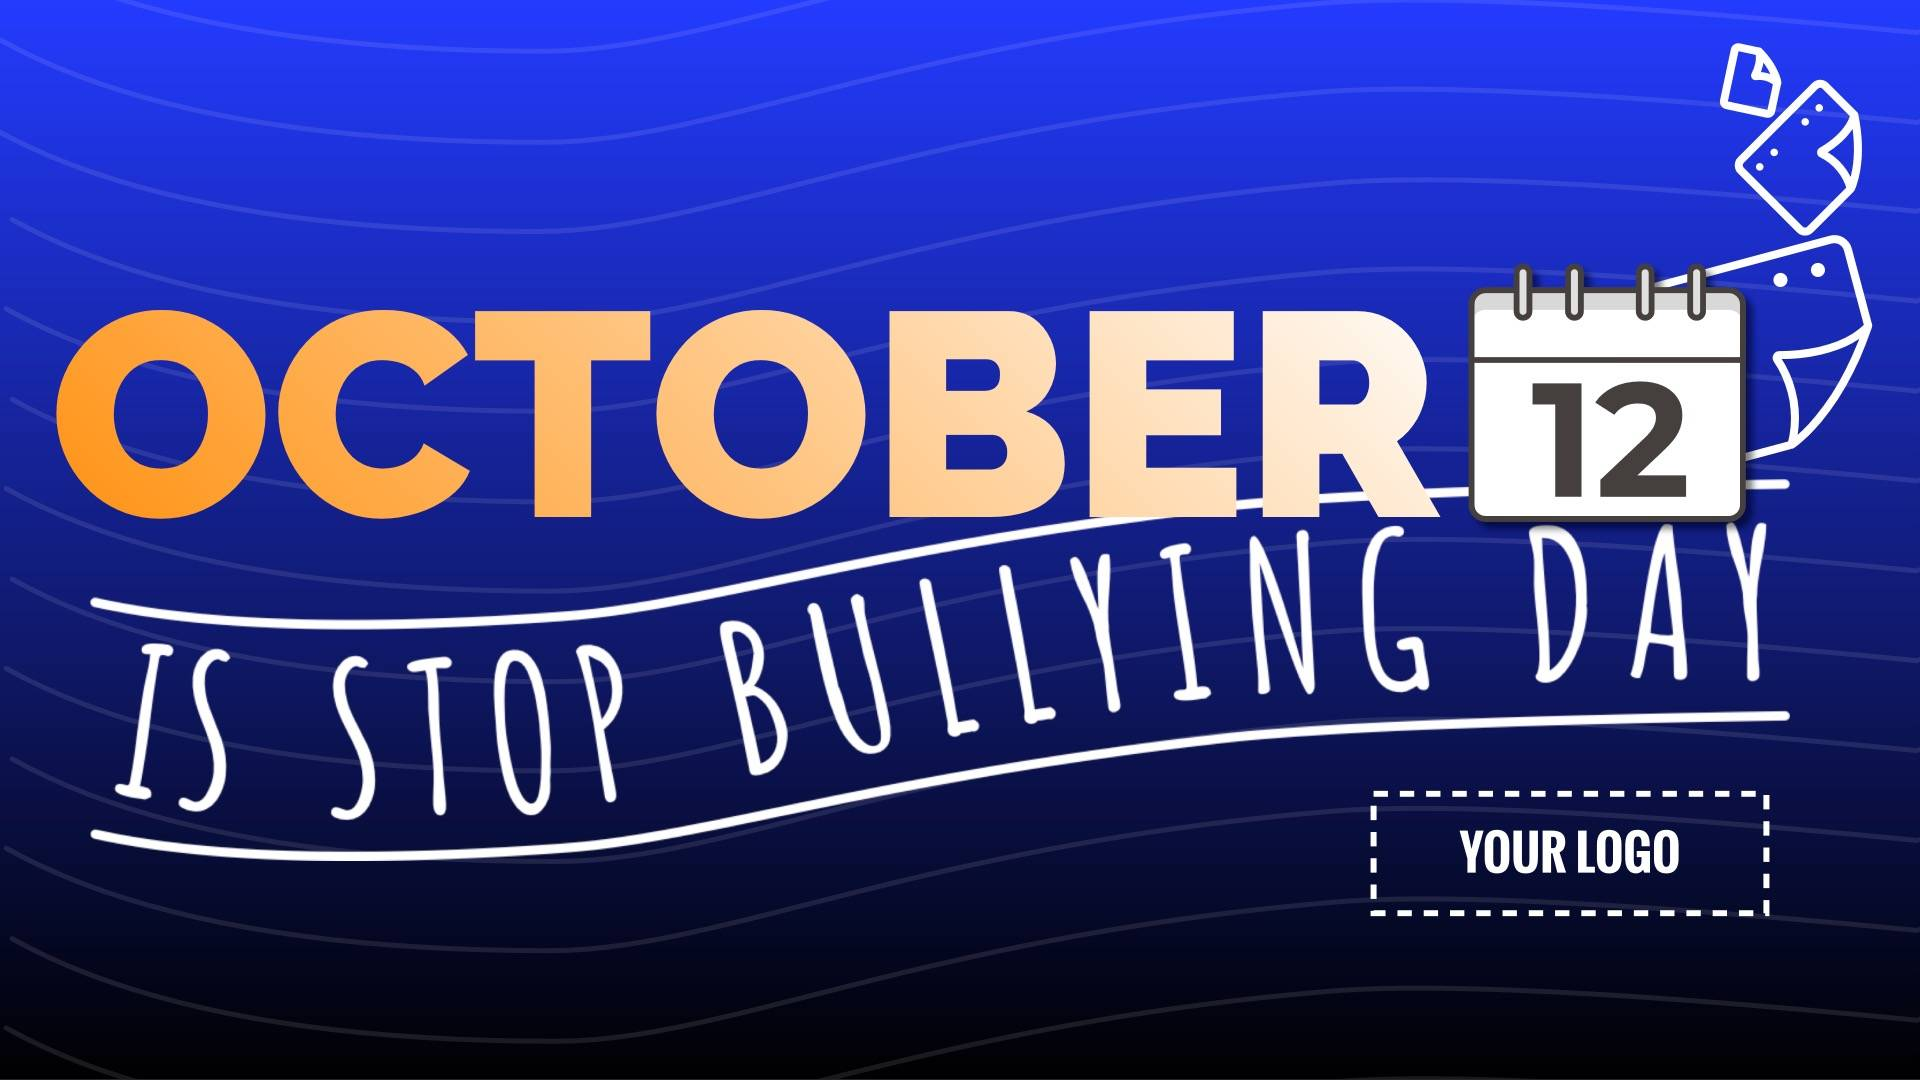 Stop Bullying Day Digital Signage Template